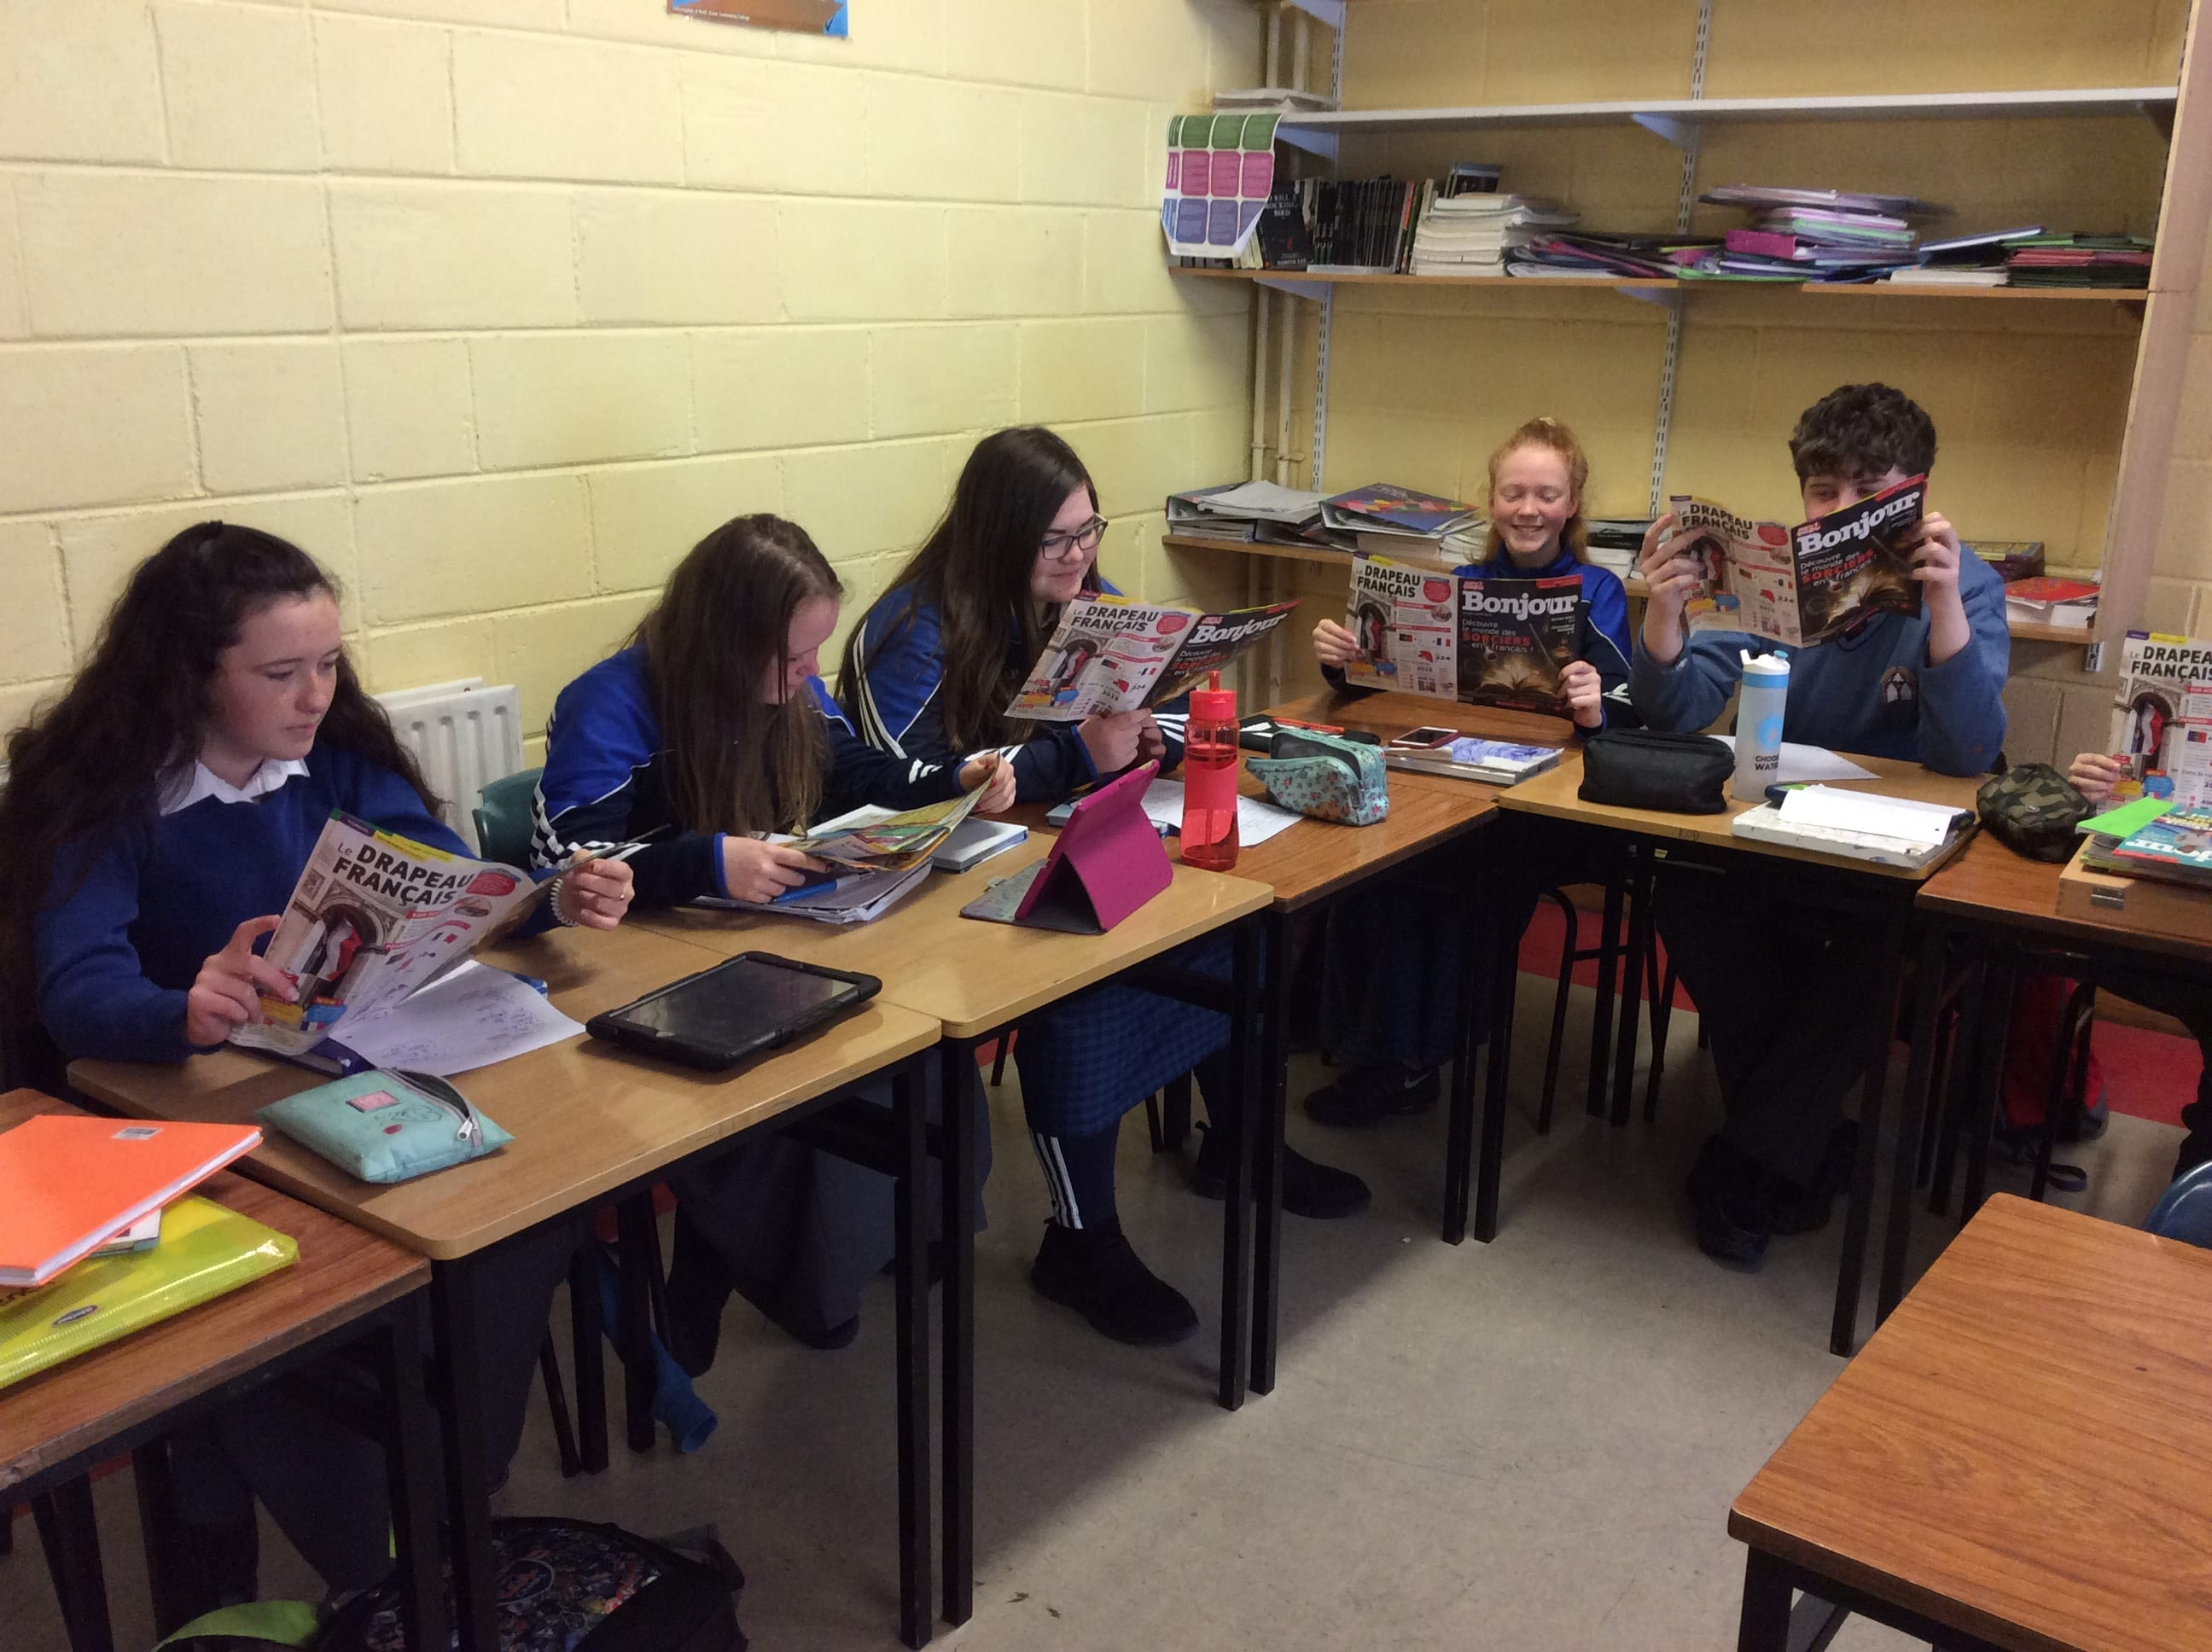 2nd Year French students enjoying reading their French language magazines to develop their literacy and comprehension skills.